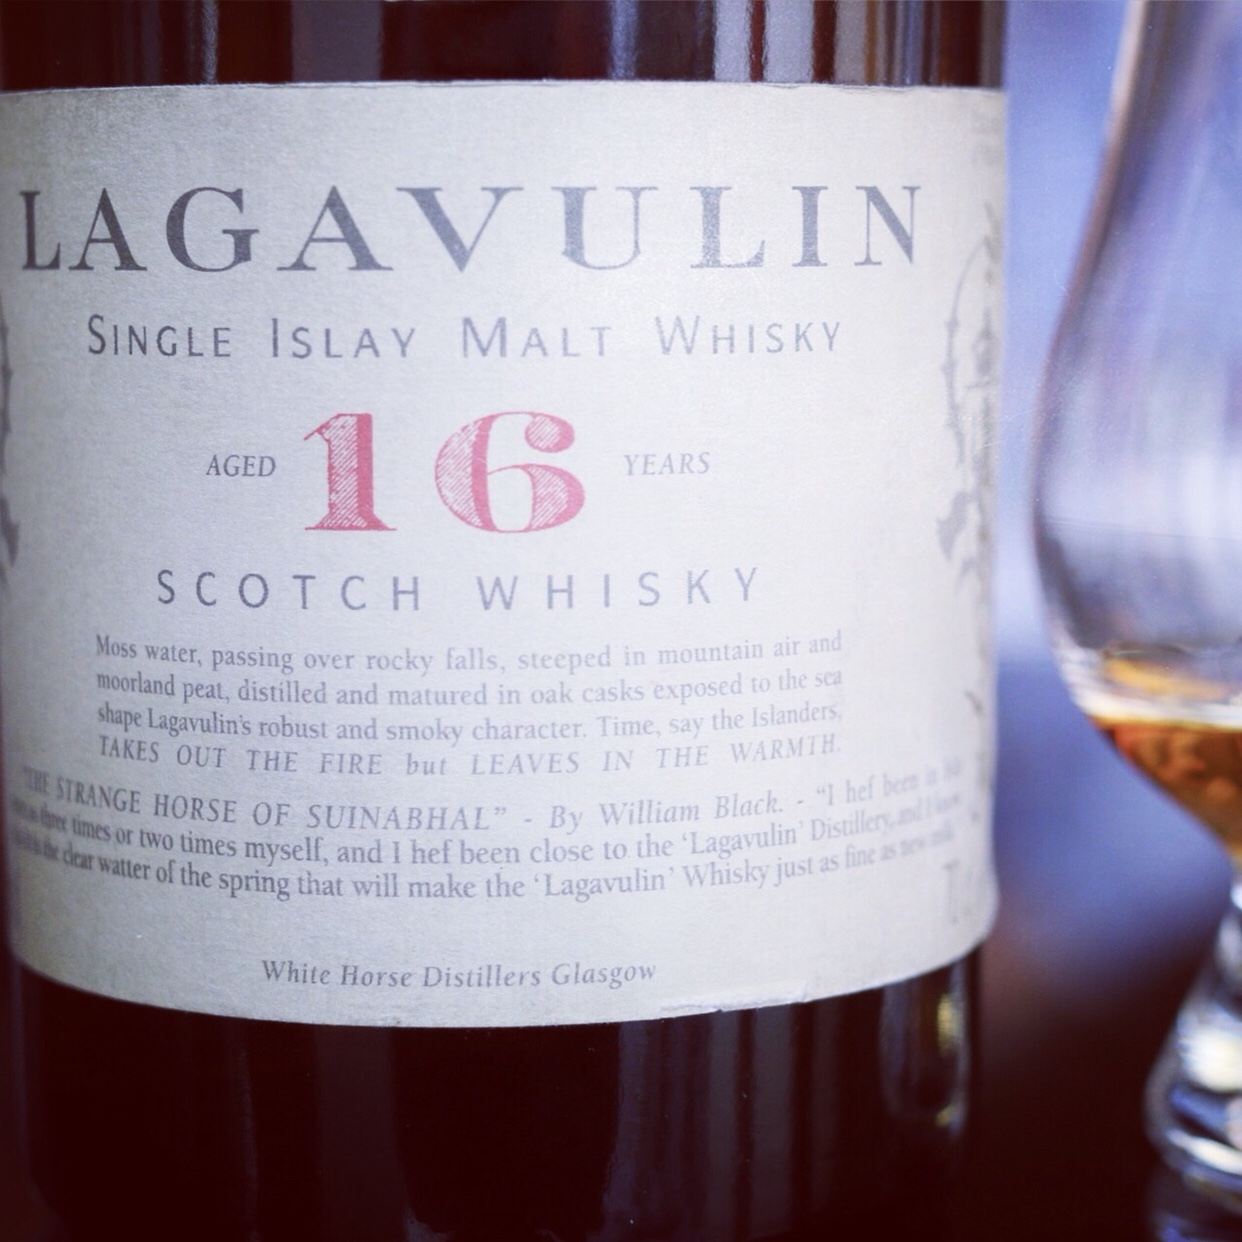 Dram Review: Lagavulin Aged 16 Years (White Horse Distillers Glasgow, Bottled Circa 1990)